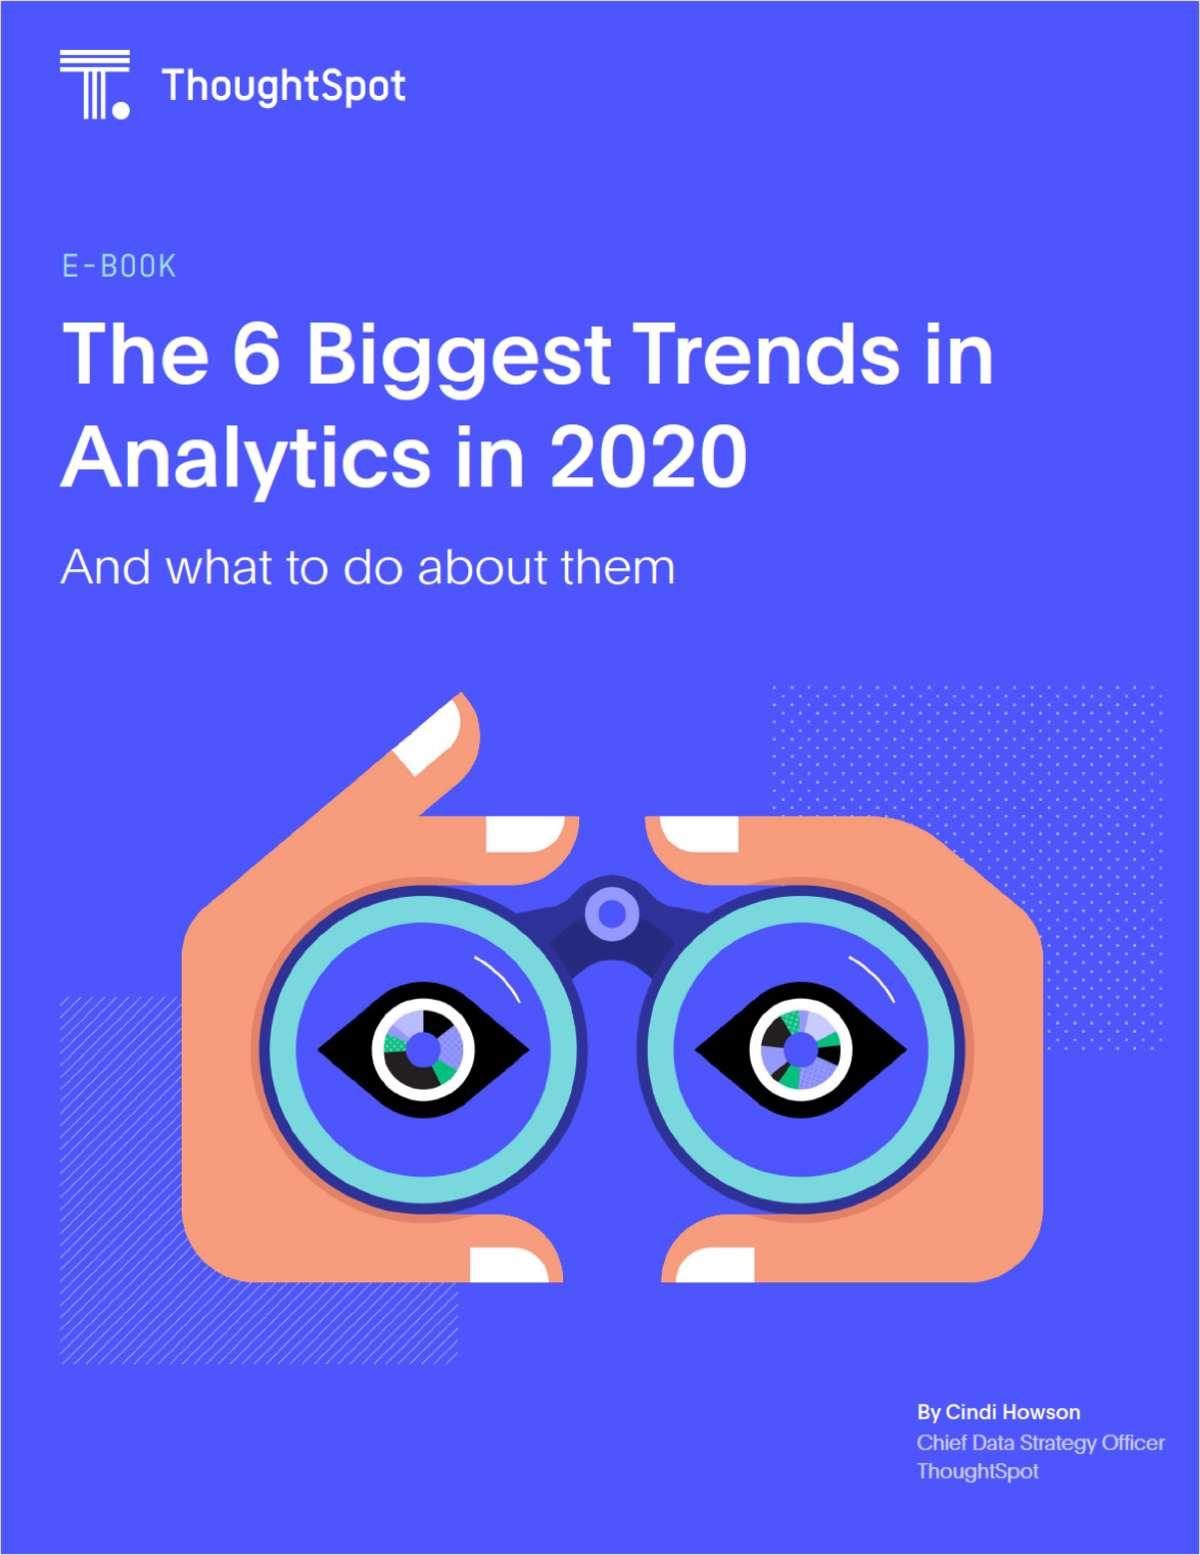 6 Biggest Trends in Analytics in 2020